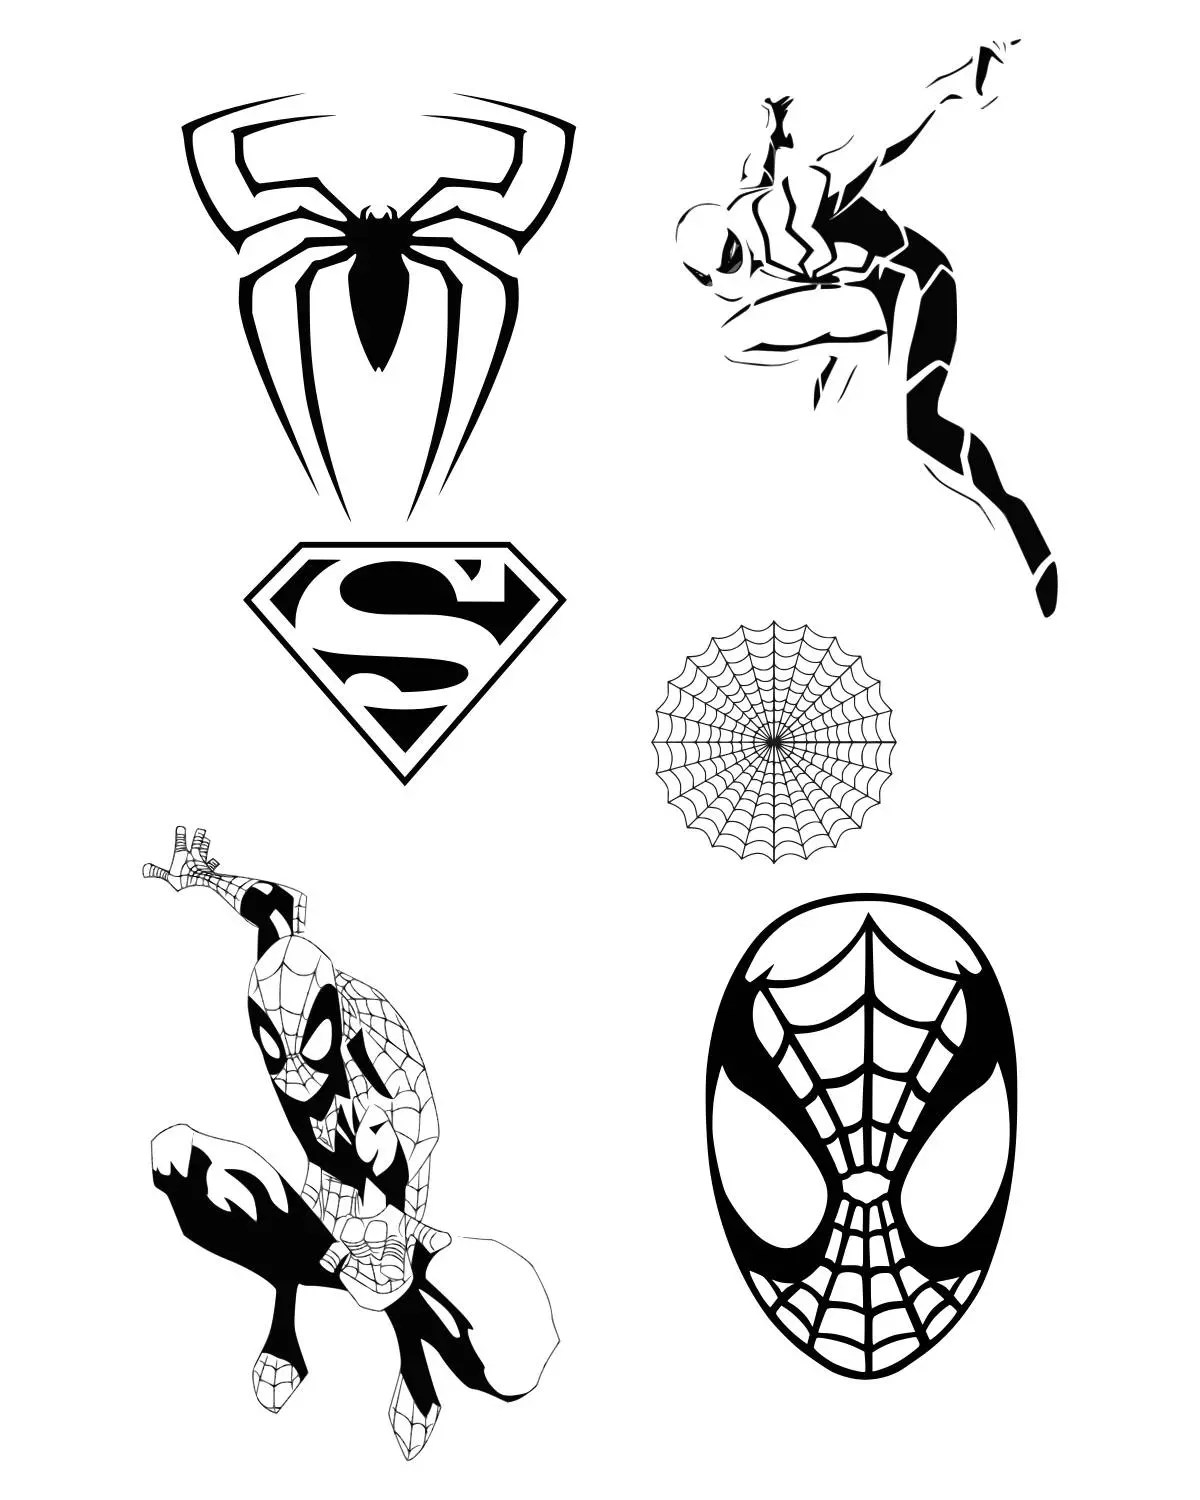 Spiderman Svg Clipart Silhouette Inspiree Par Spider Man